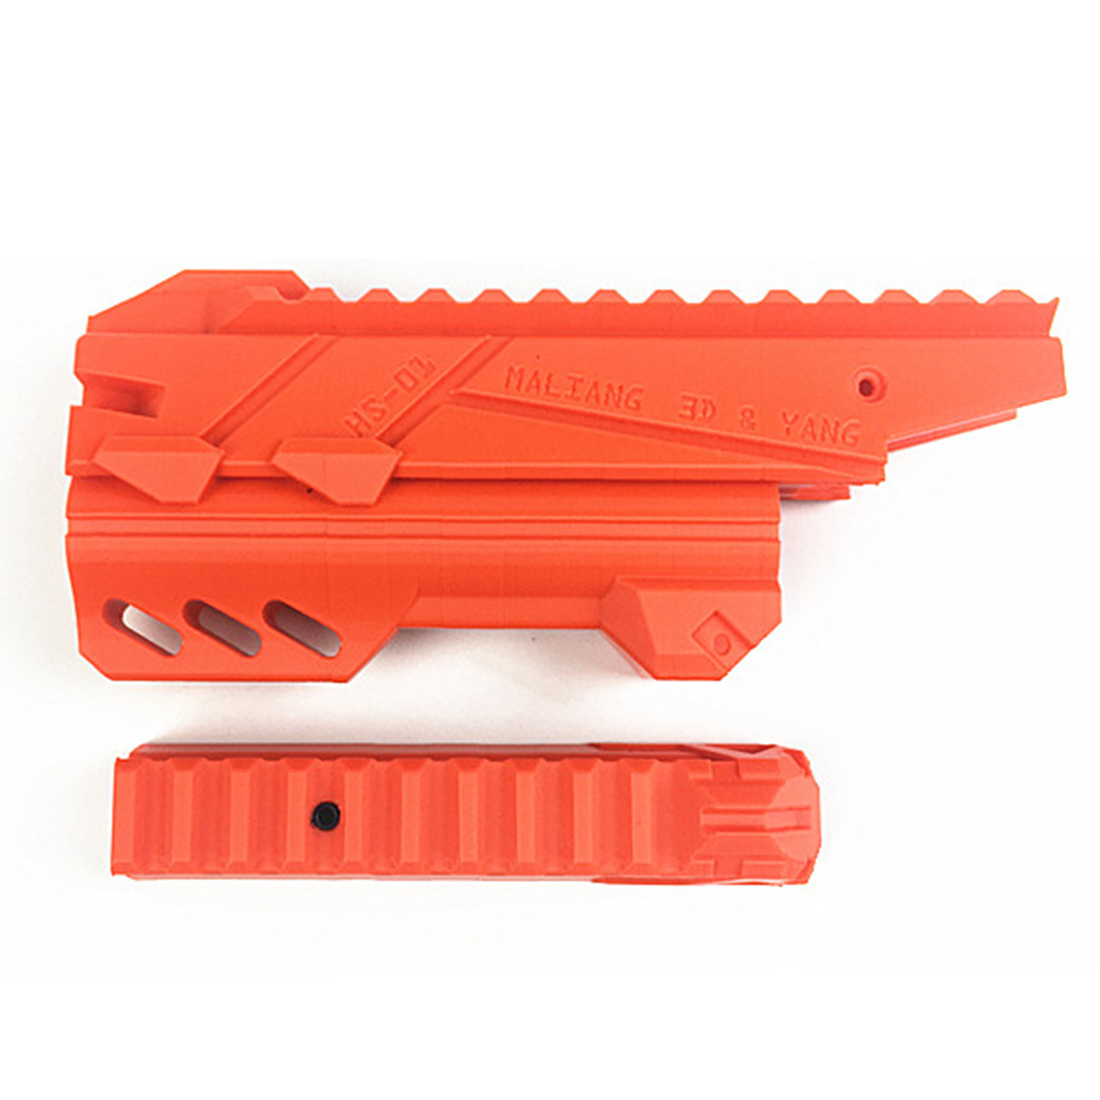 Maliang 3D Printing Modified HS-01A Front Tube and Top Rail Kit for Nerf Zombie Strike Hammershot BlasterMaliang 3D Printing Modified HS-01A Front Tube and Top Rail Kit for Nerf Zombie Strike Hammershot Blaster